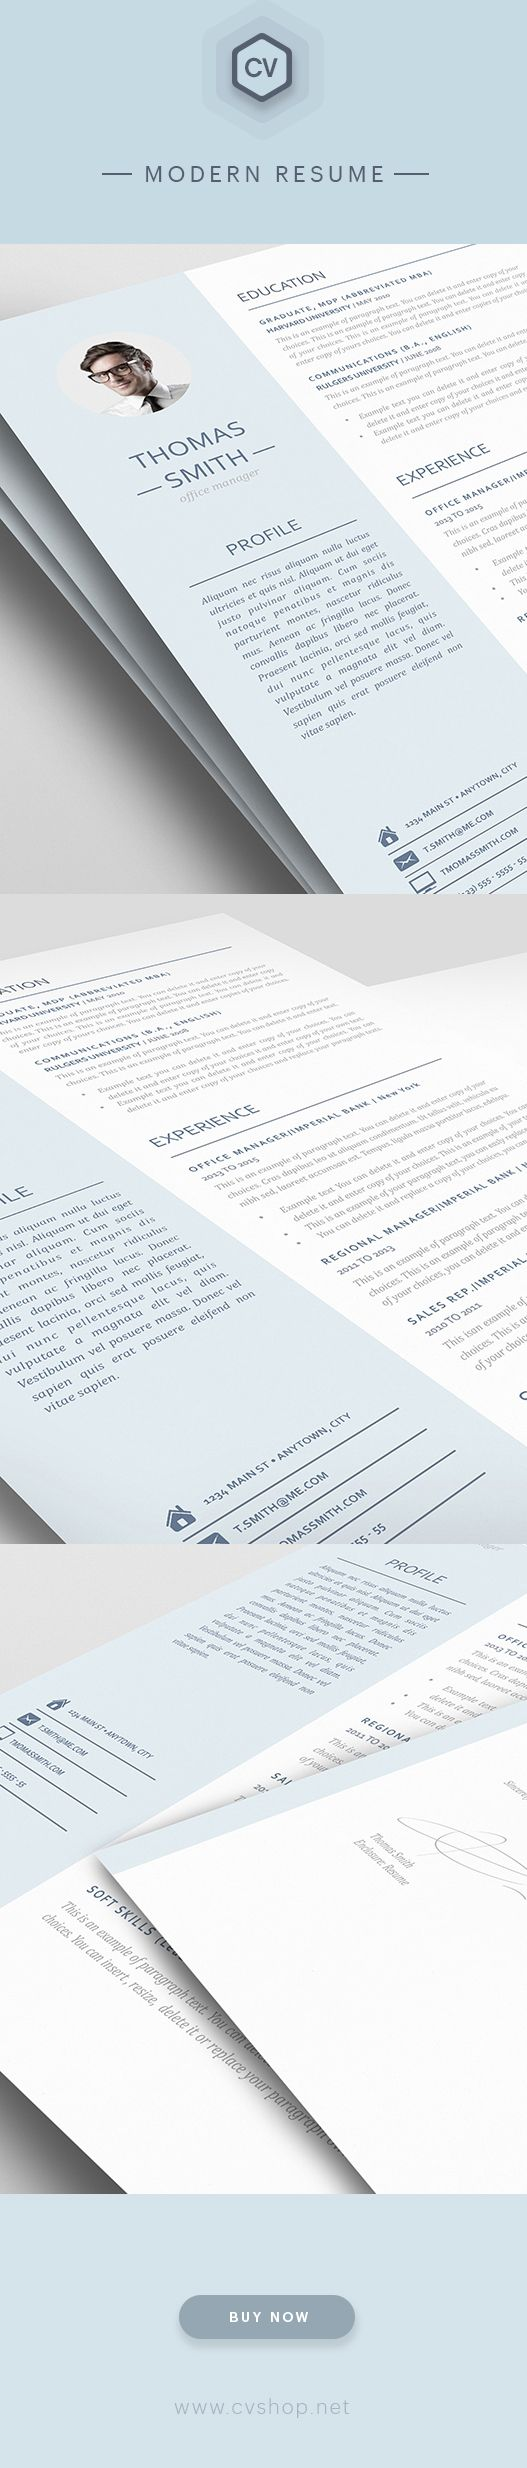 best images about cv word templates modern